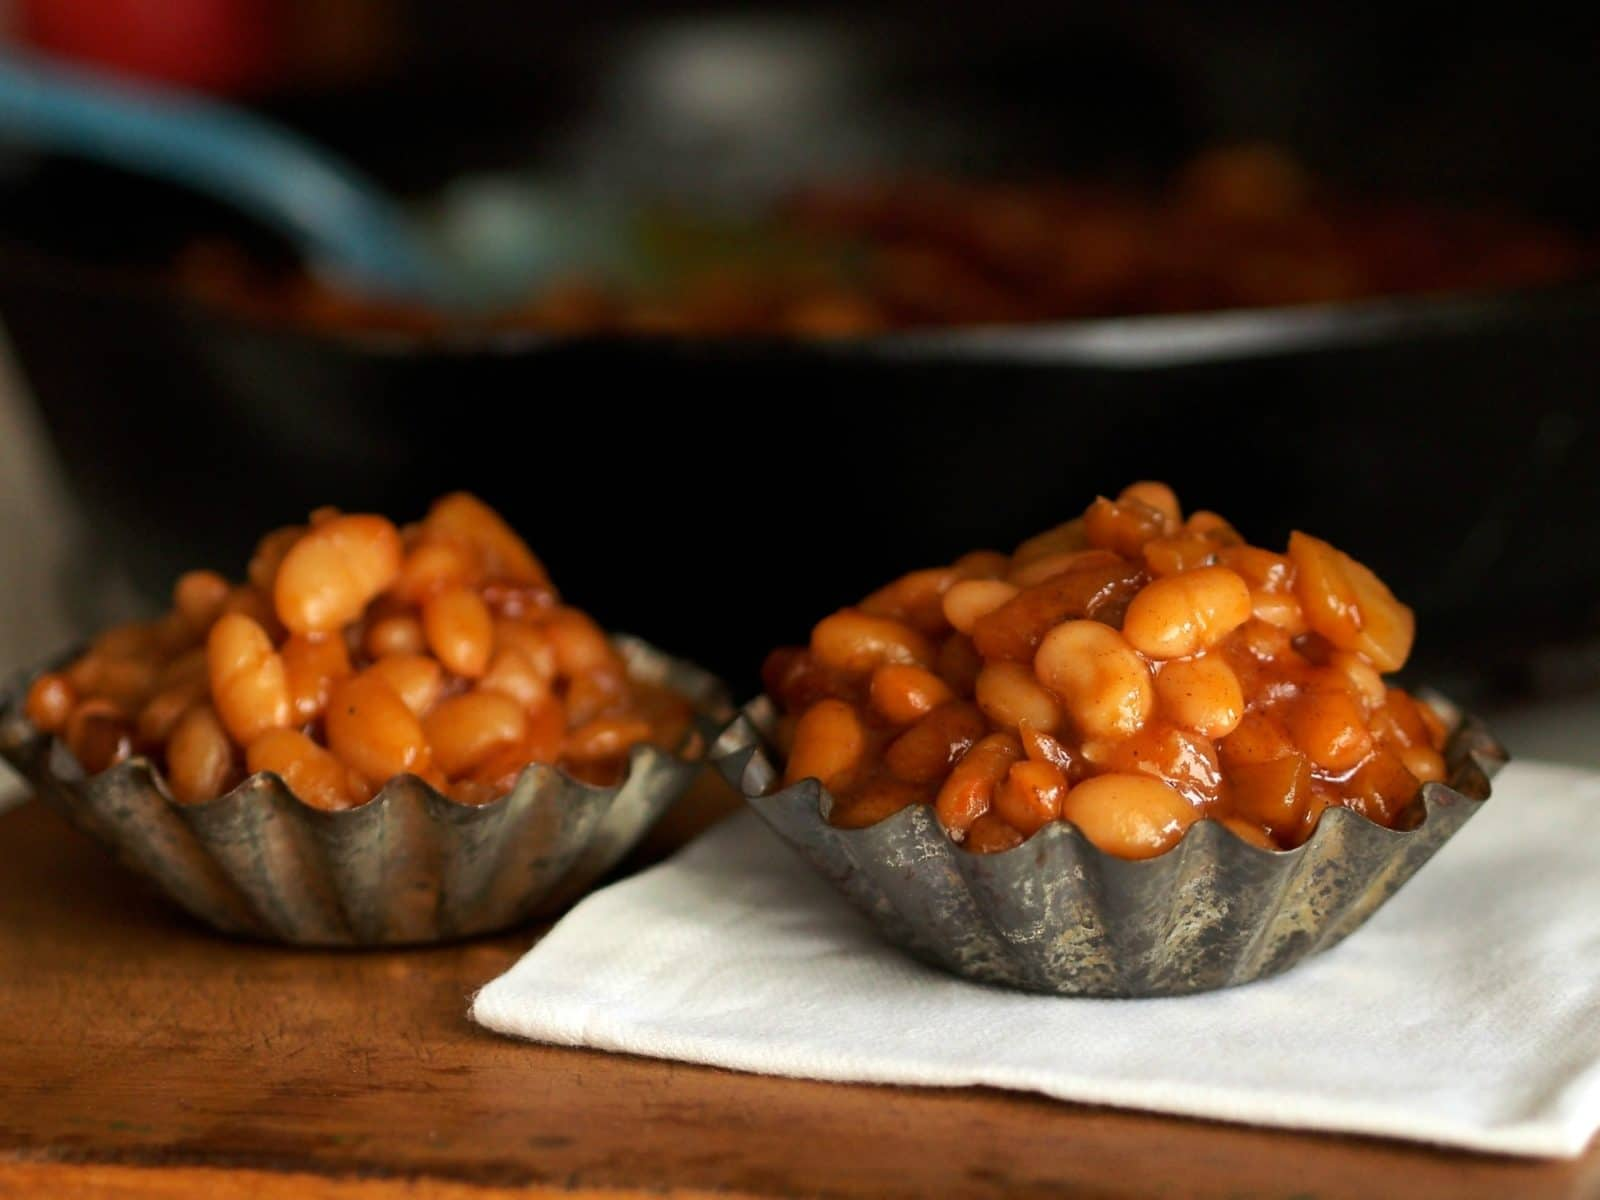 Apple Brown Sugar Baked Beans are one of the best two baked beans recipes - ever! simplysated